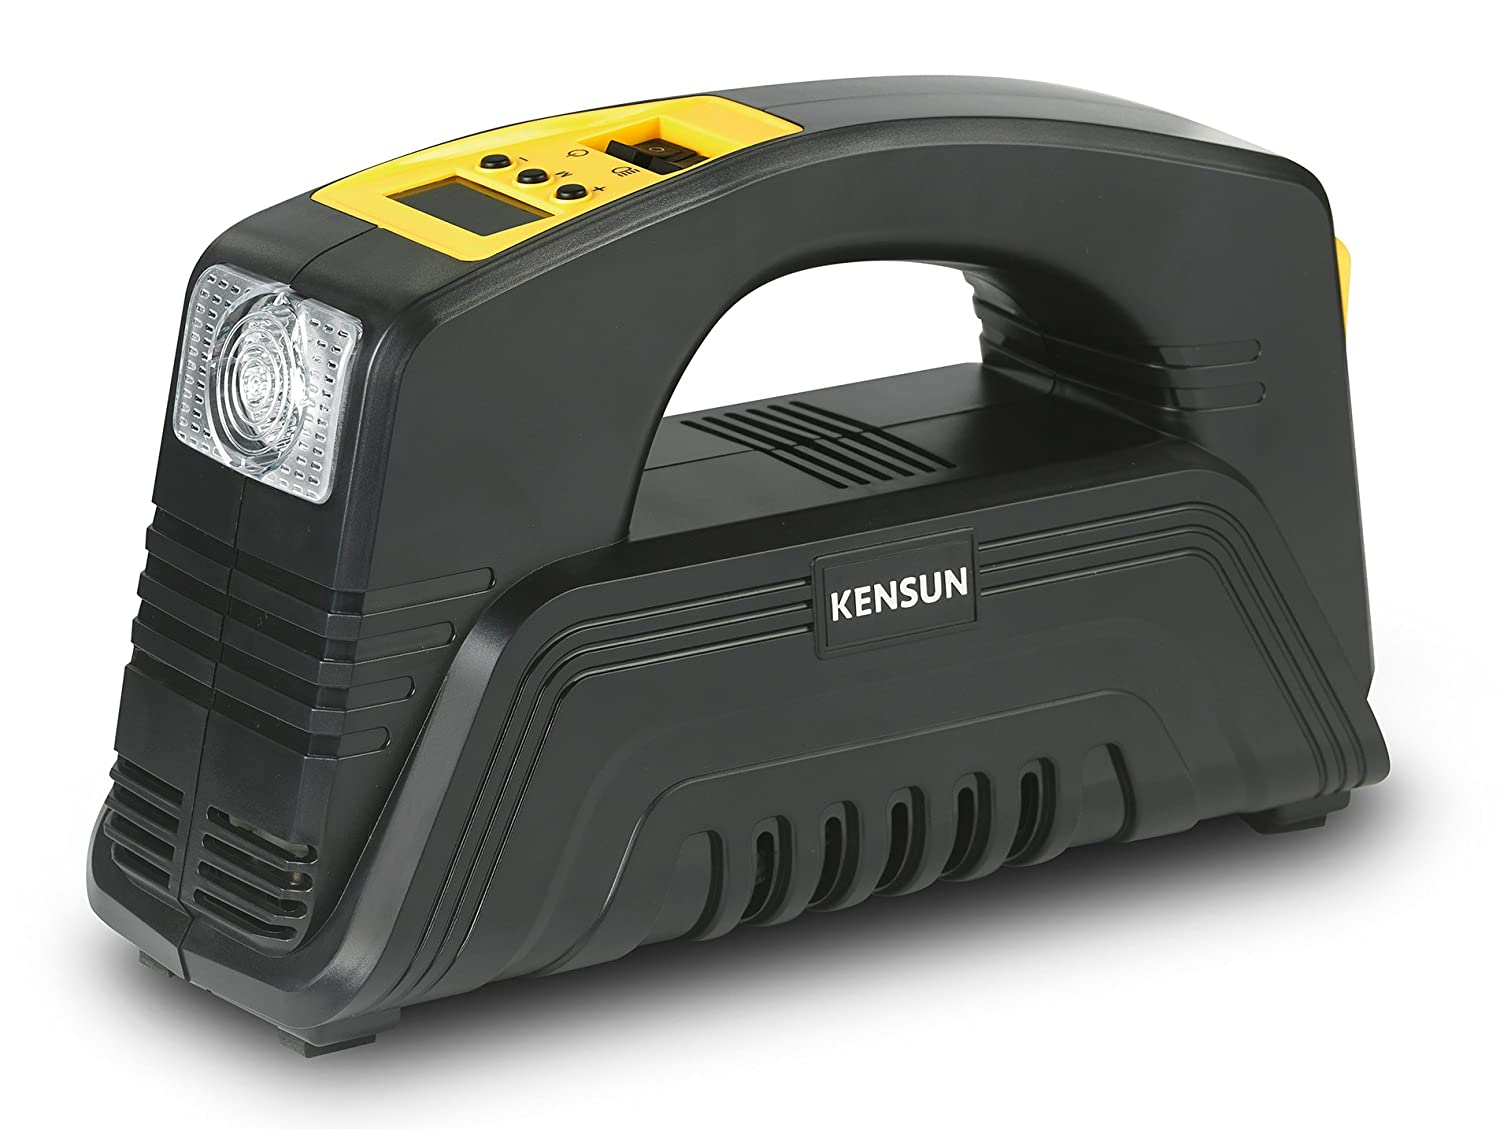 6. Kensun heavy duty tire inflator